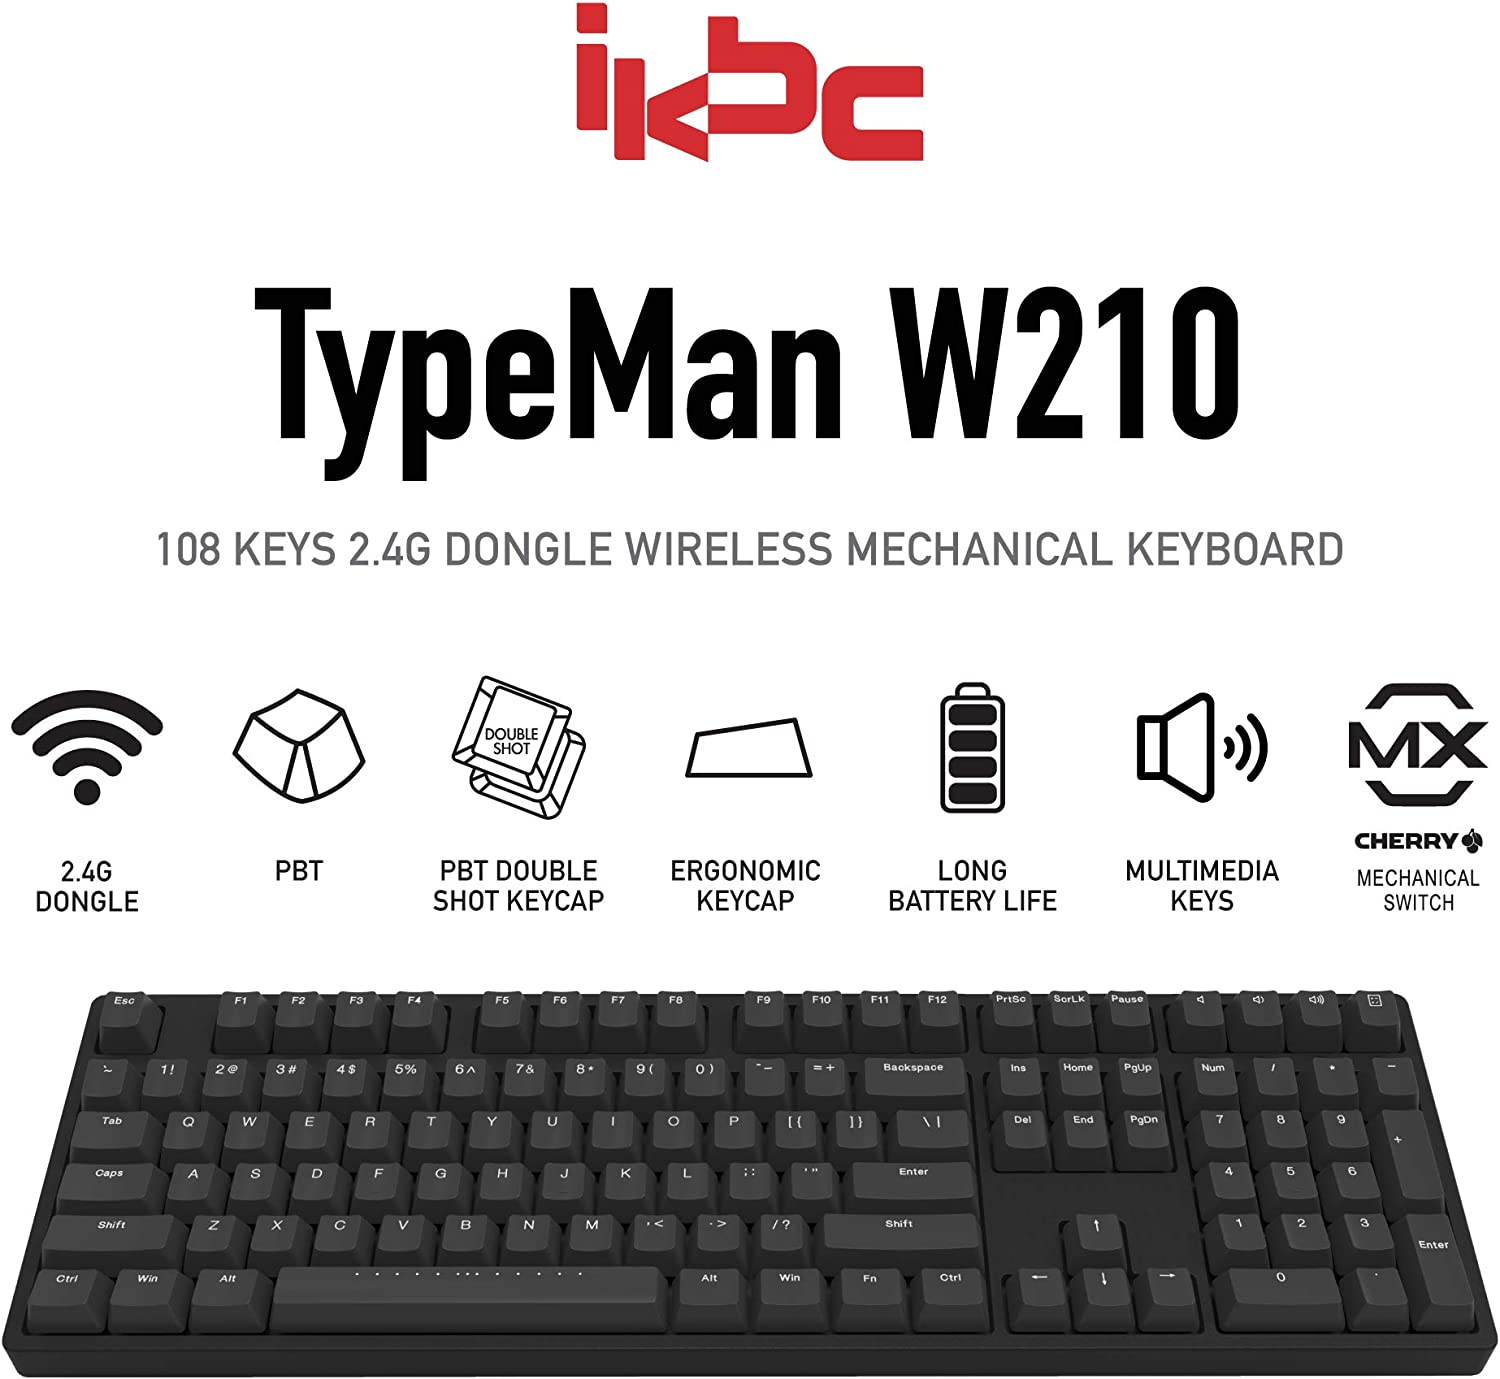 iKBC W210 Wireless Mechanical Keyboard with Cherry MX Red Switch for Windows and Mac OS, Enables Media Key and LED Indicator (2.4G Dongle, USB 2.0, PBT Double Shot 108 Keycaps, Black Color, ANSI/US)